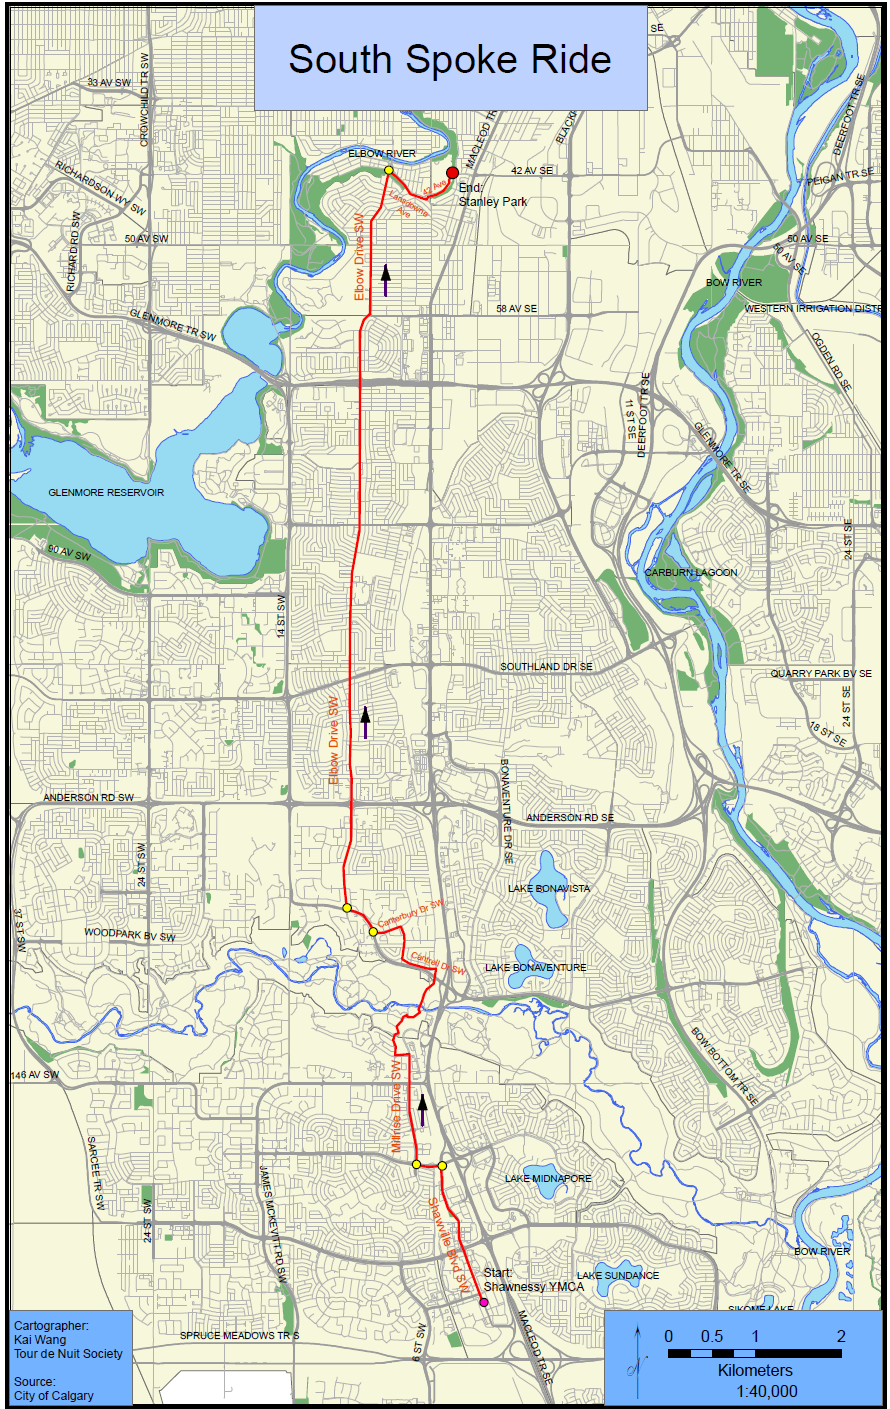 A map of the route for the South Spoke Ride in Calgary, Alberta.